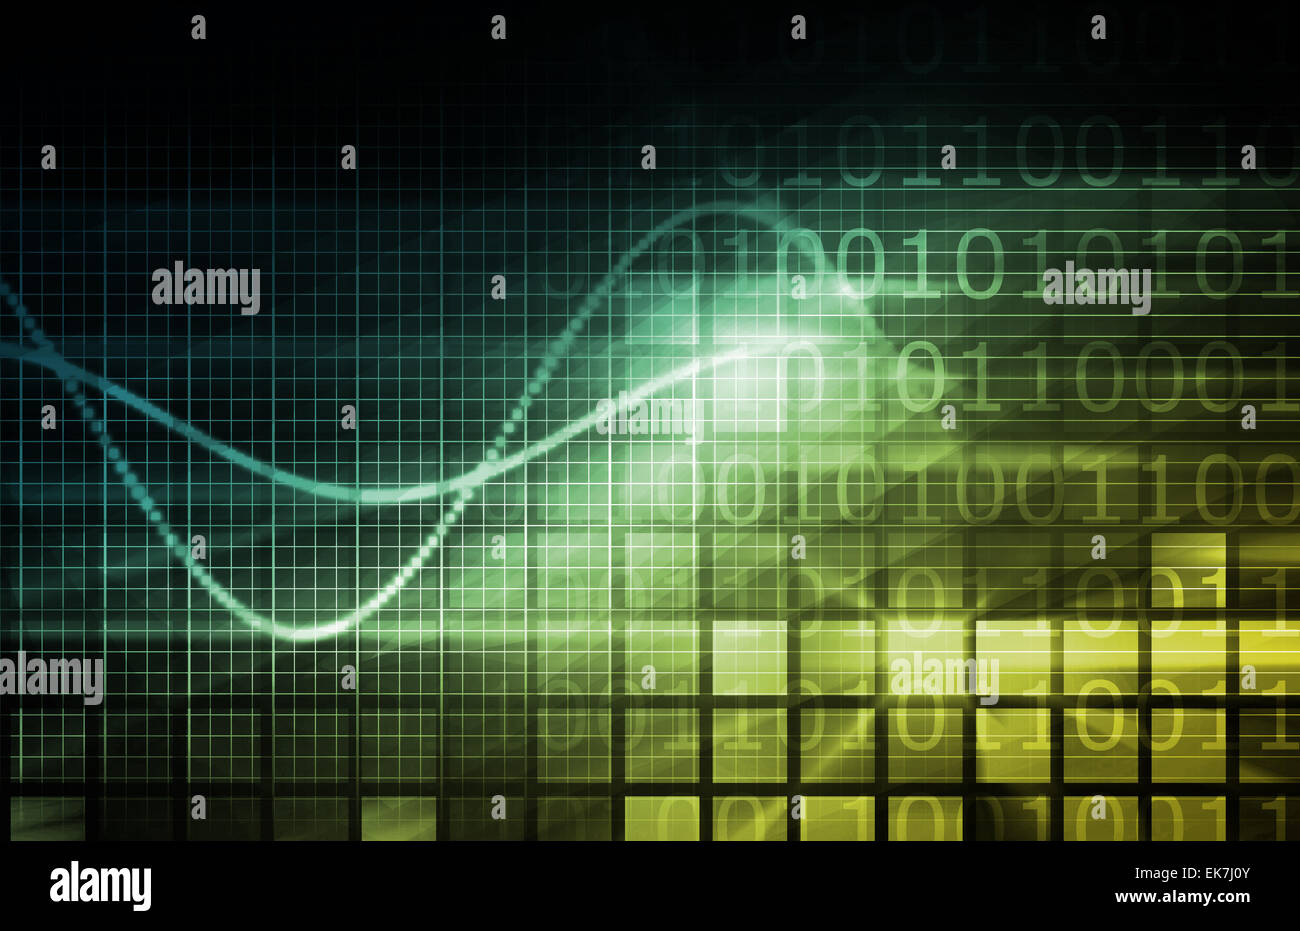 Tech Mechanical Engineering Science - Stock Image